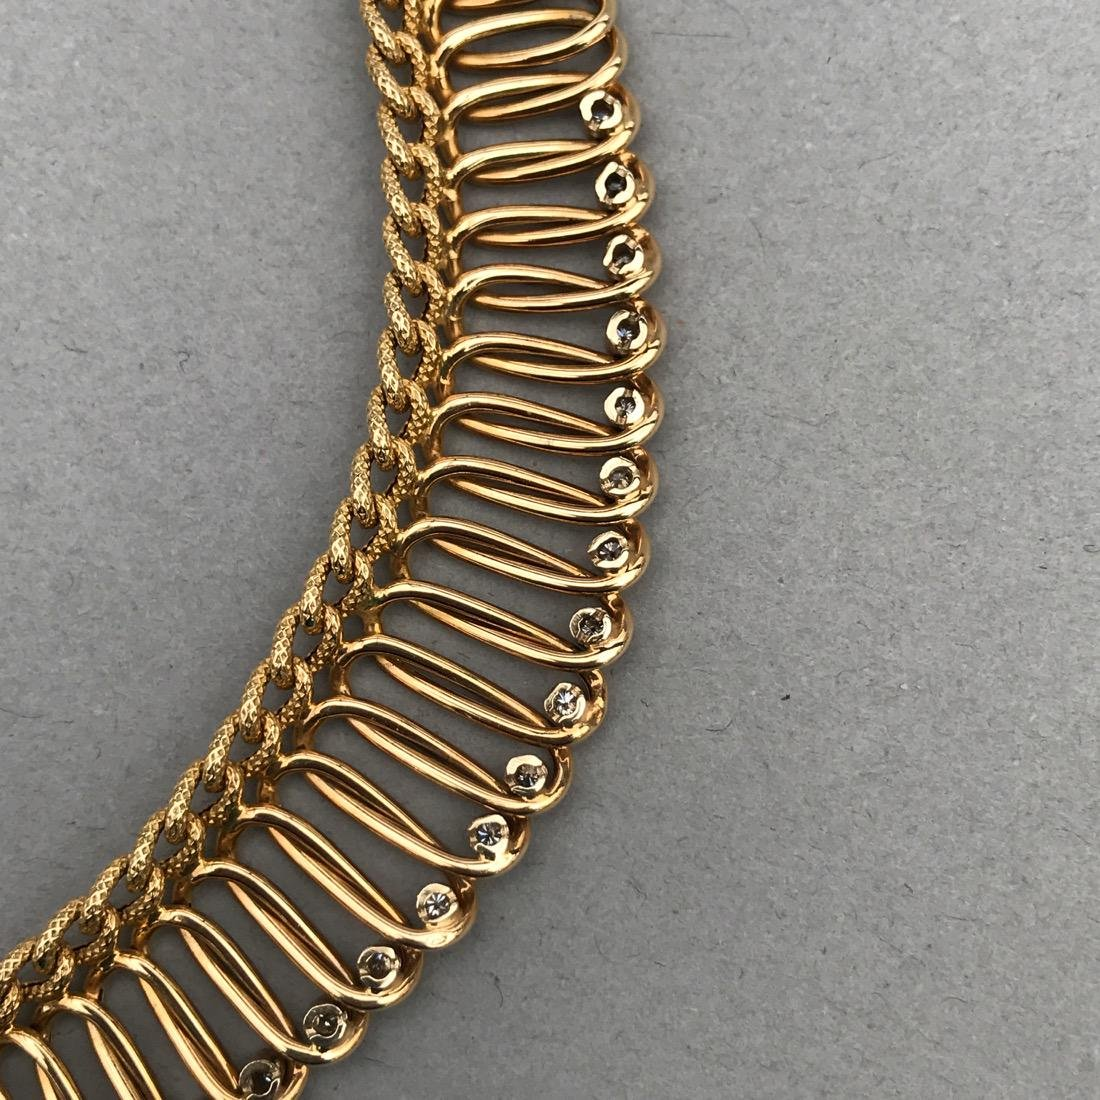 14K Gold Necklace with 18 Diamonds - 6